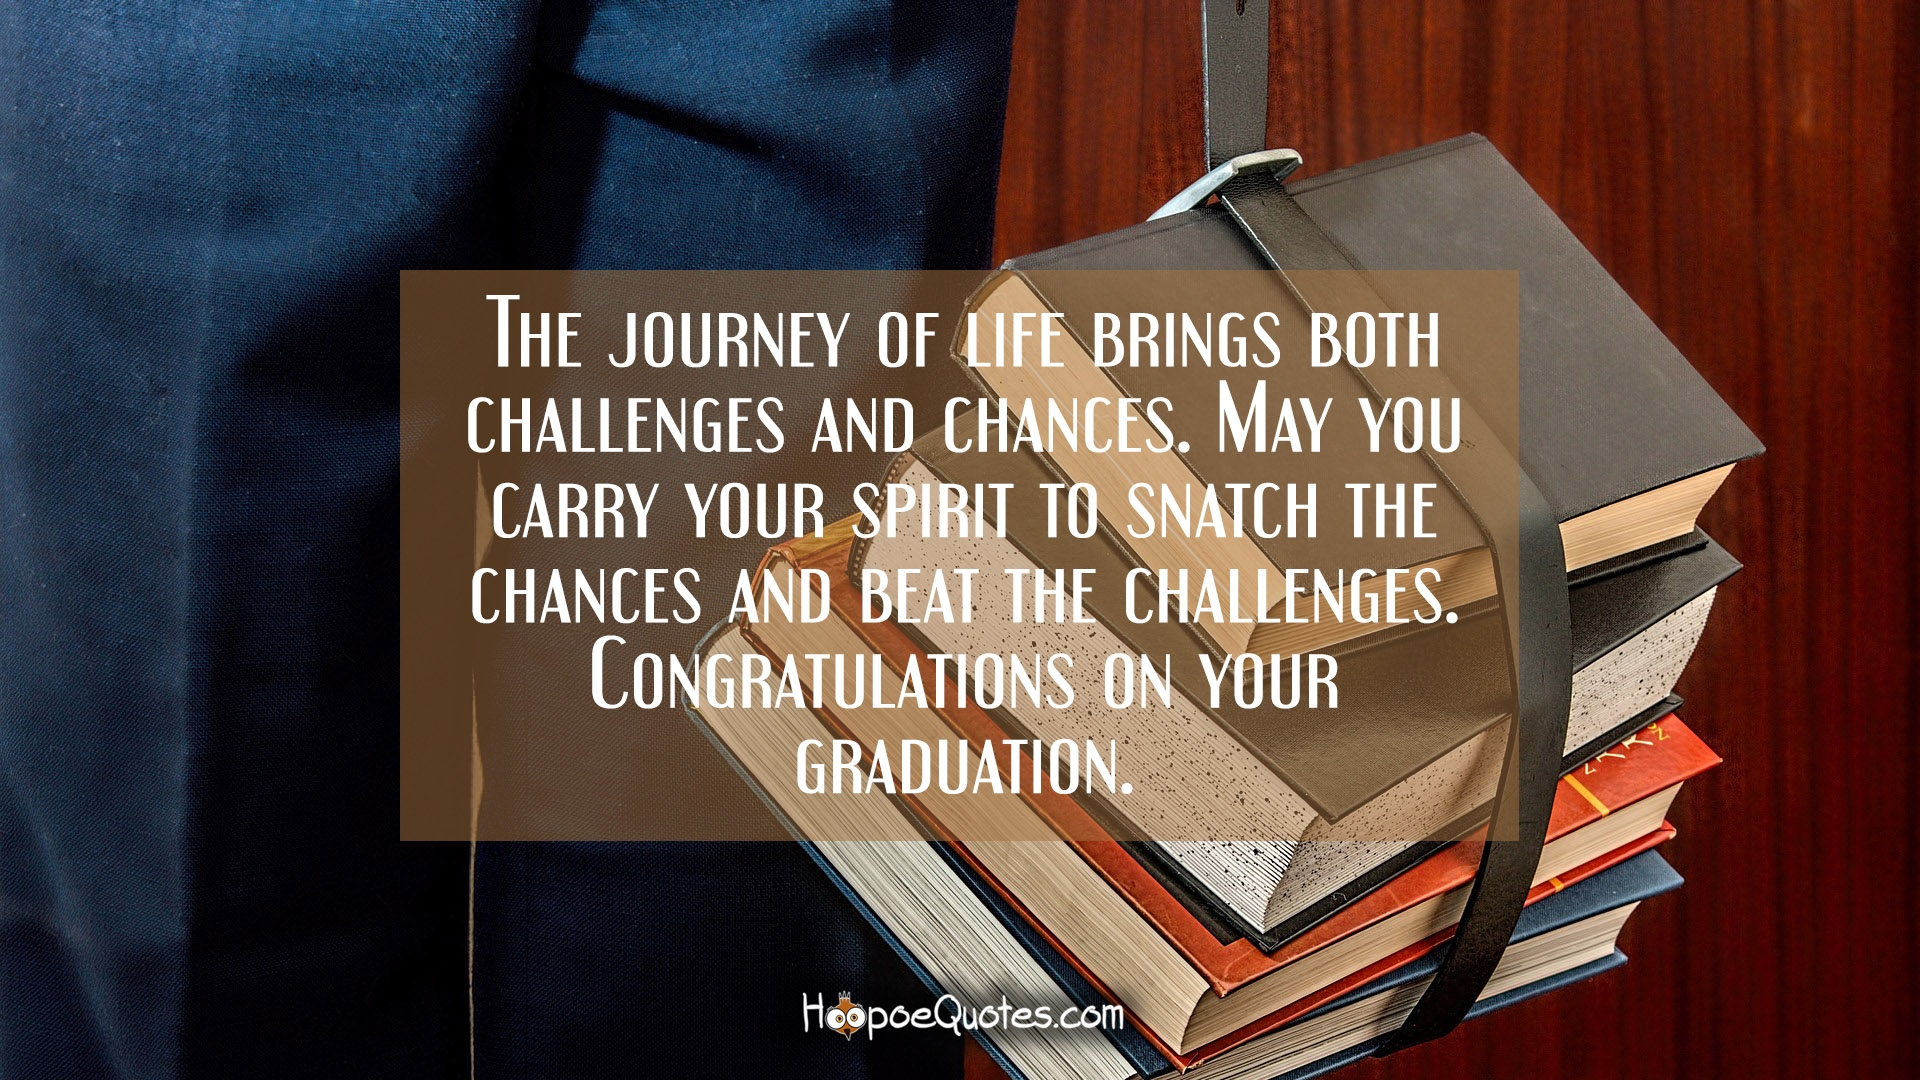 Splendiferous May You Carry Your Spirit To Snatch Chances Beat On Your Graduation Wishes Hoopoequotes Congratulations You Have Done It Congratulations You Did It Meme inspiration Congration You Done It